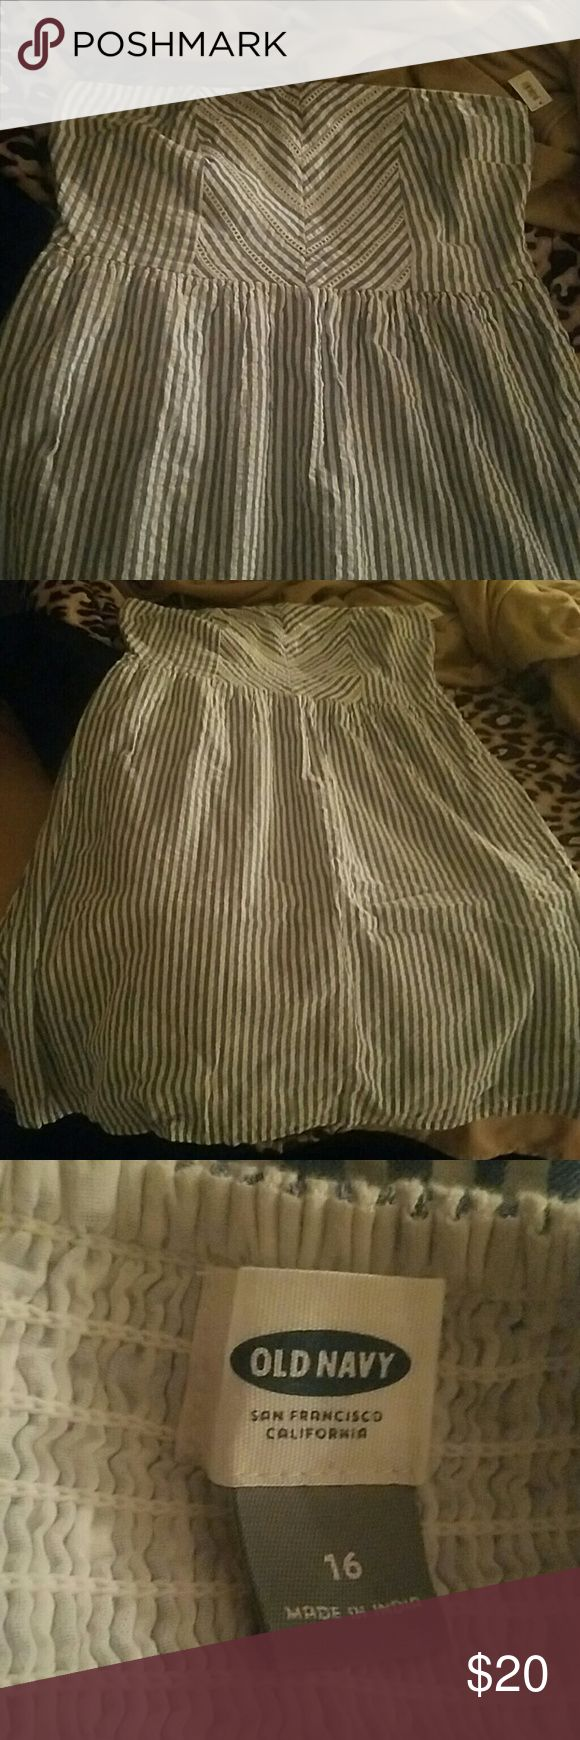 Old Navy Plus Size strapless dress *price drop make me an offer* Perfect for spring! Never worn, tag attached. Blue and white stripes, zippered side Old Navy Dresses Midi